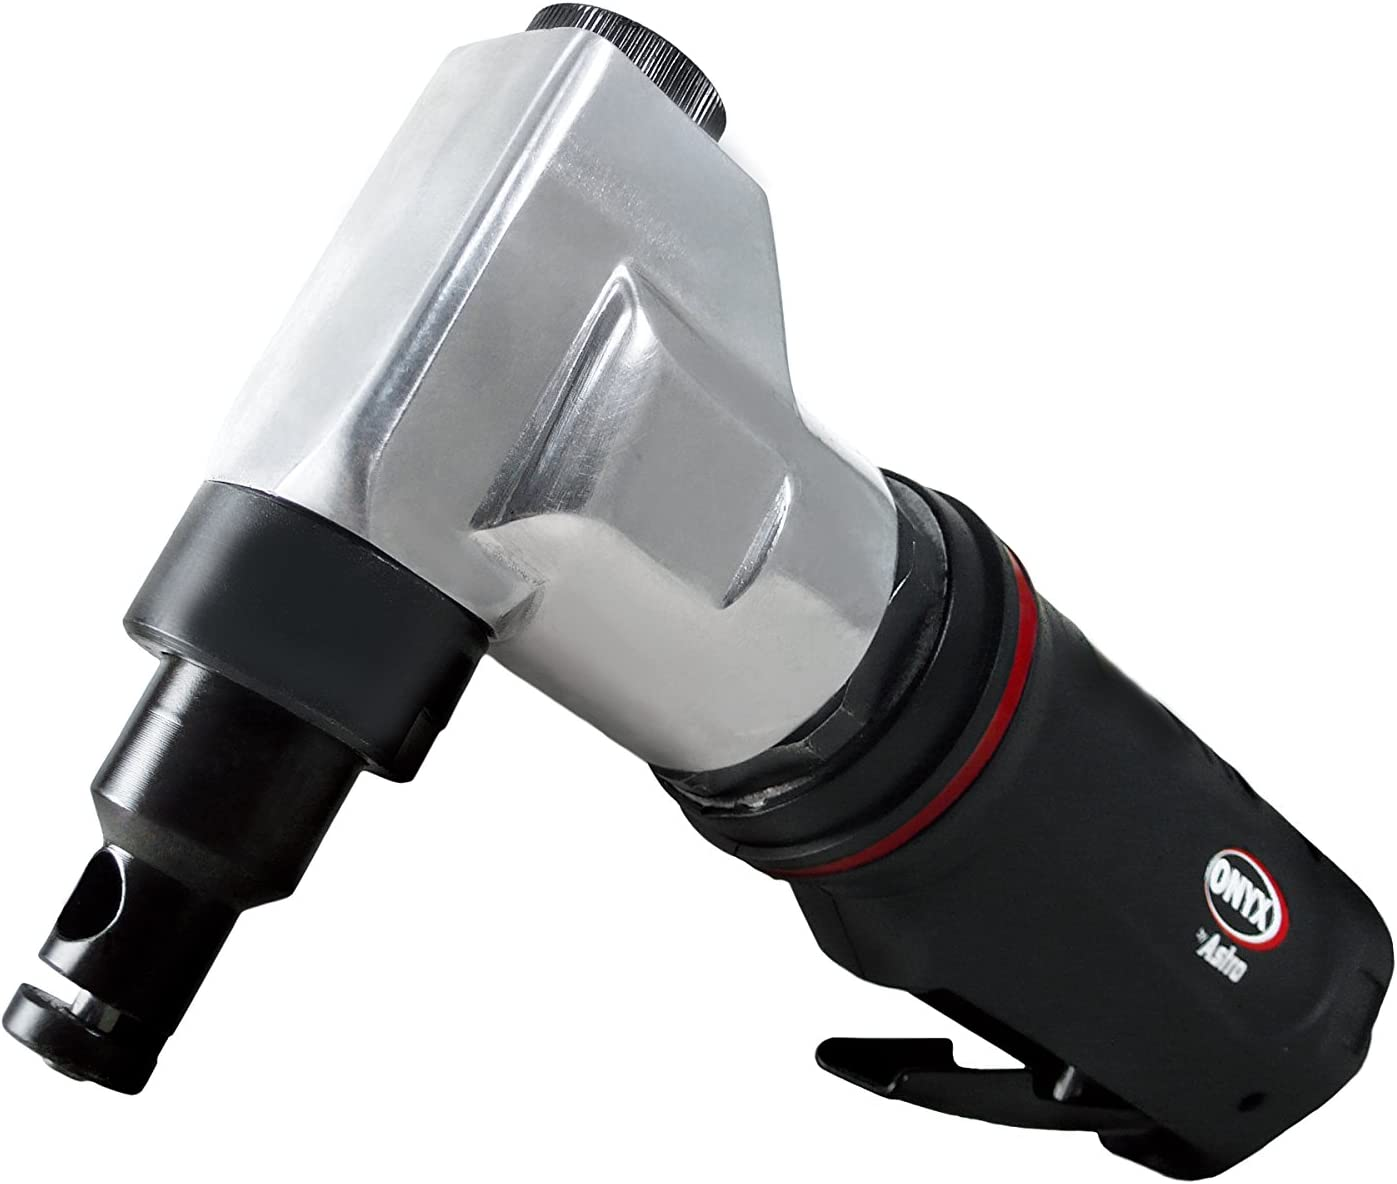 Small Product Image of Astro Pneumatic Tool 727 ONYX